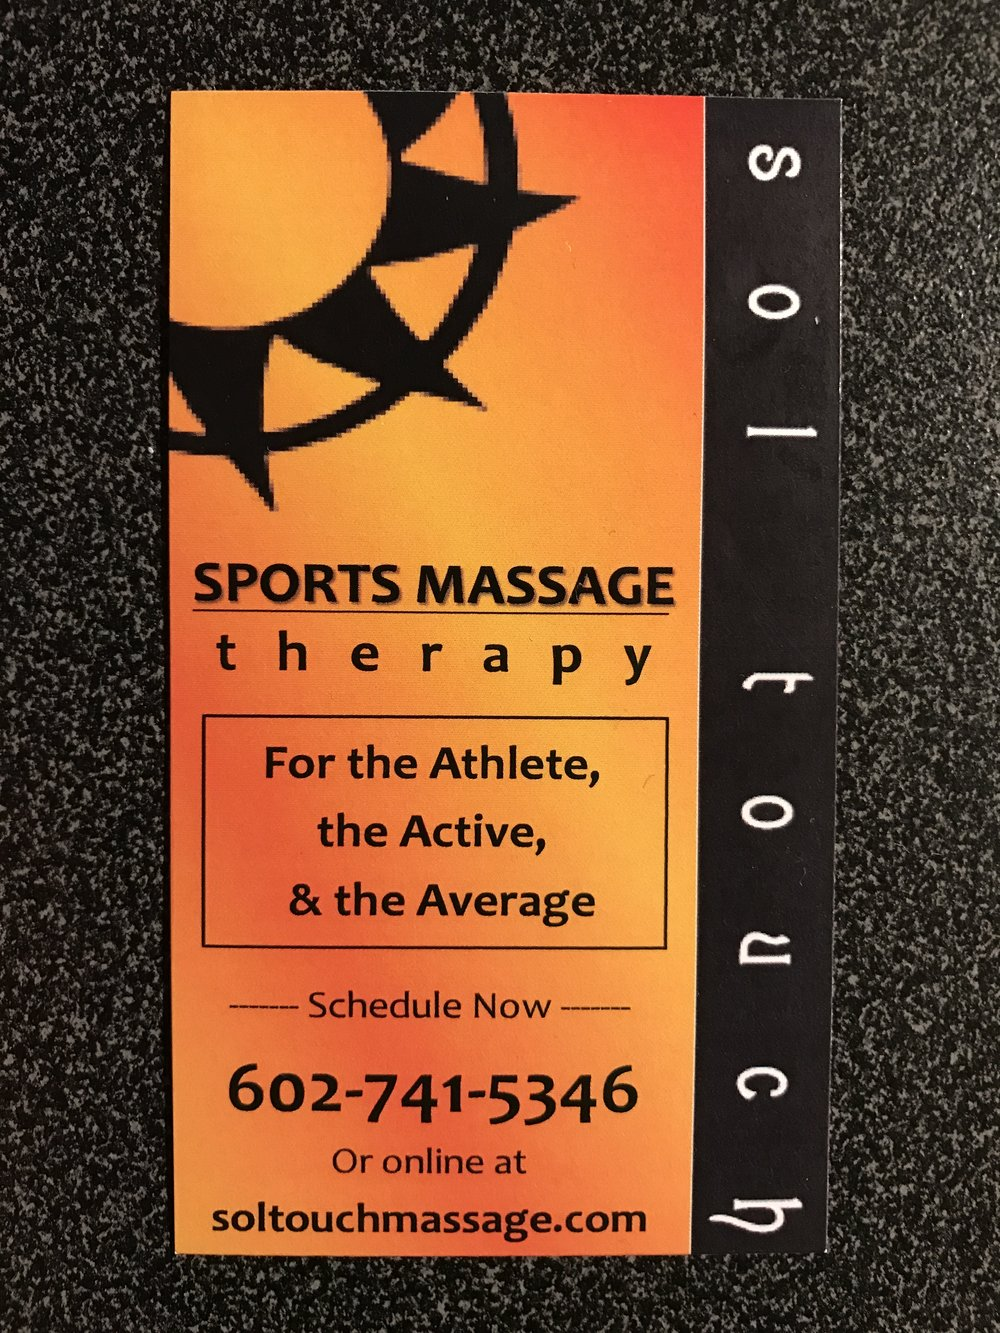 Massage business card printed in 2017.